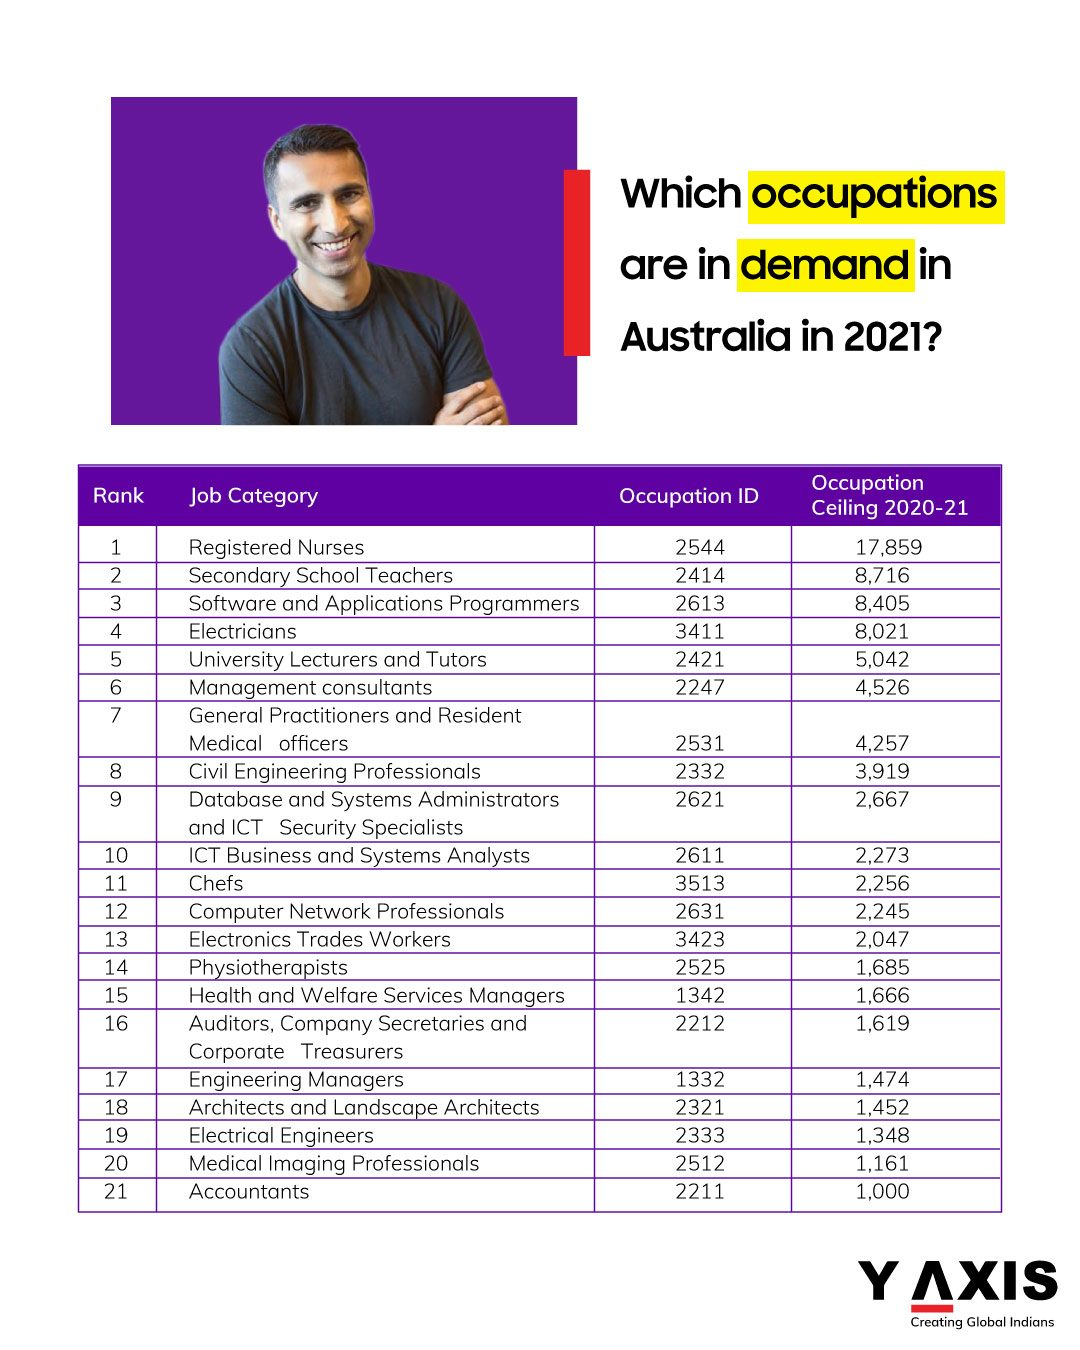 Which occupations are in demand in Australia in 2021?